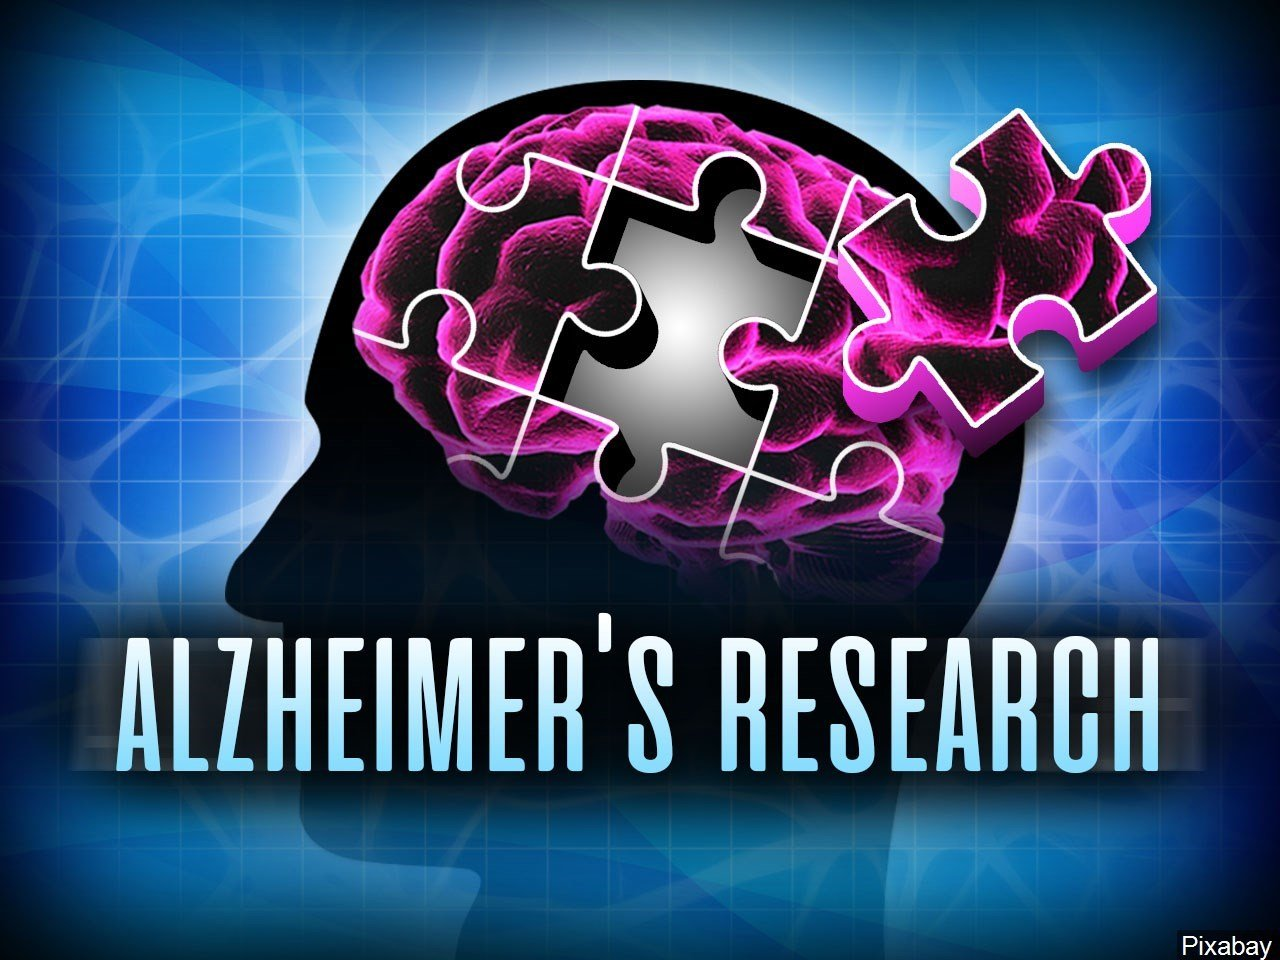 Herpes virus may play role in Alzheimer's